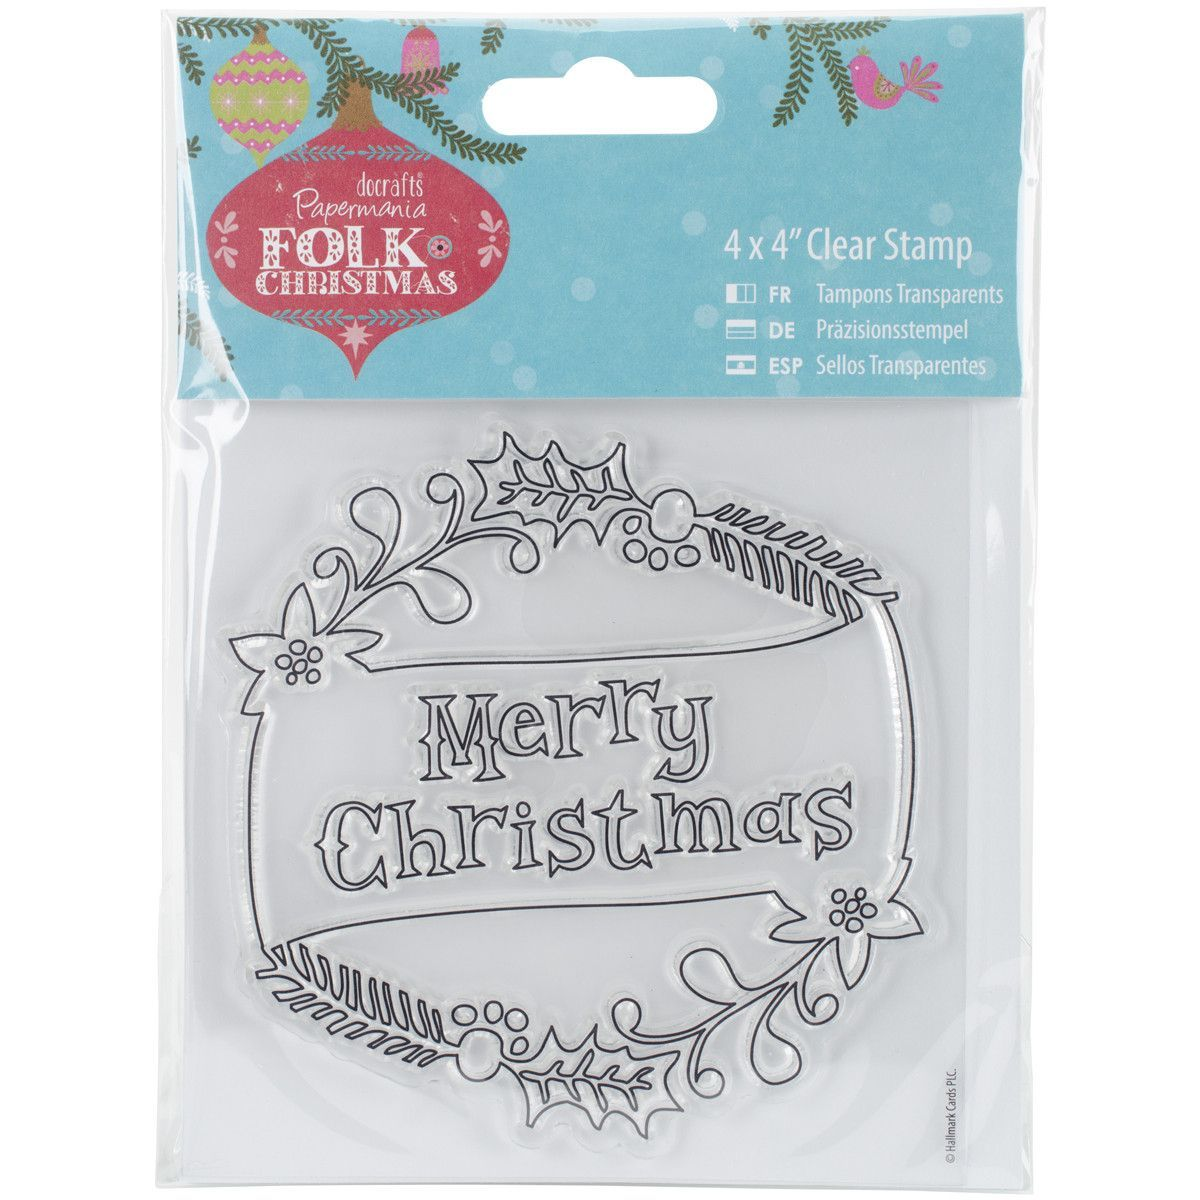 Papermania Folk Christmas Clear Stamps Merry Christmas | Products